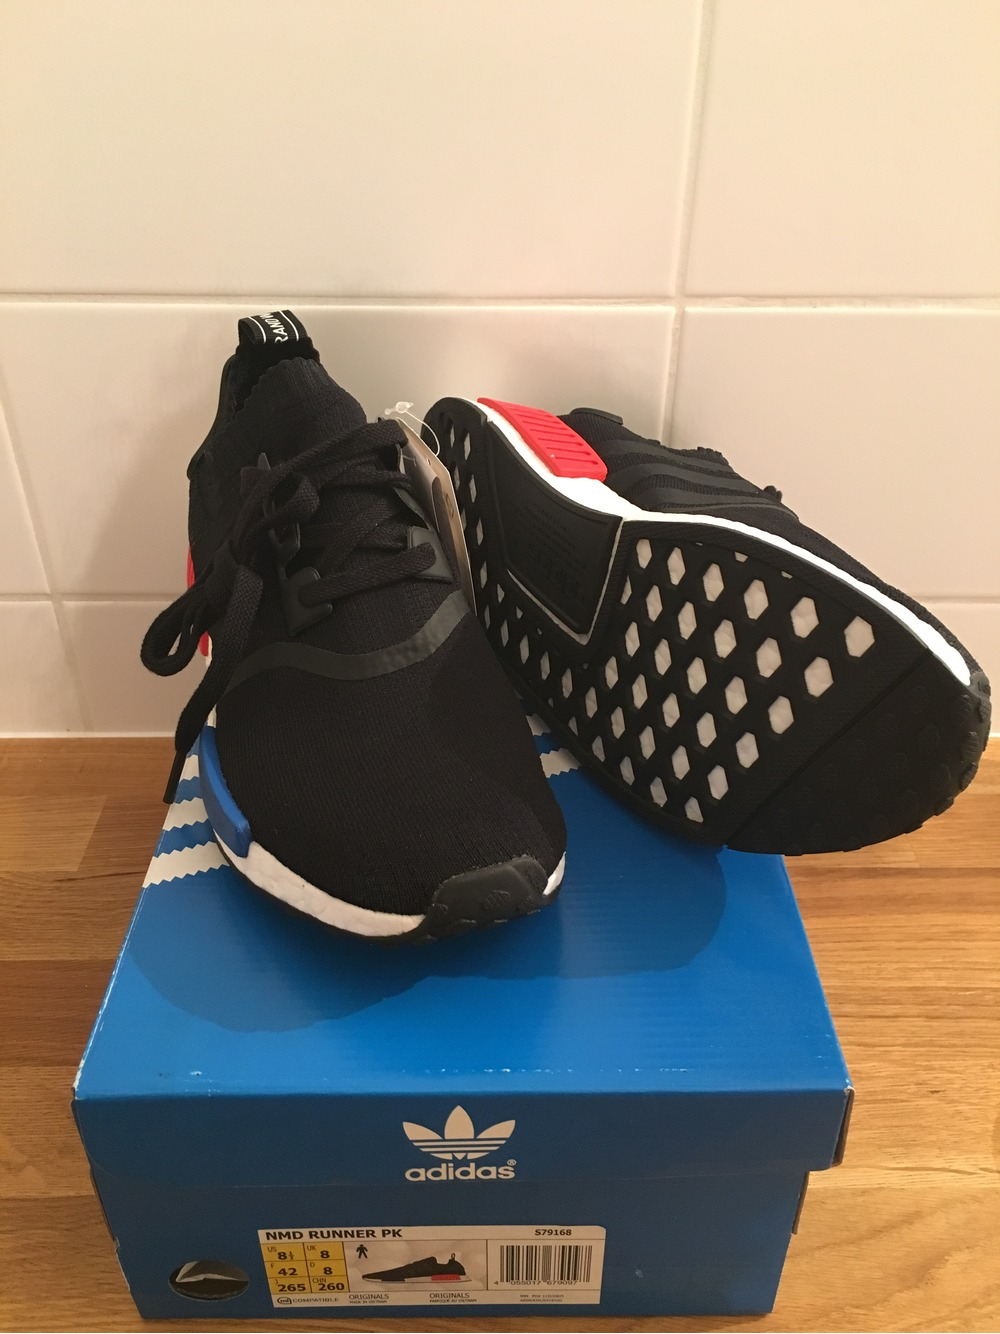 Adidas NMD Runner PK NMD Runner PK size 8,5/42 - photo 3